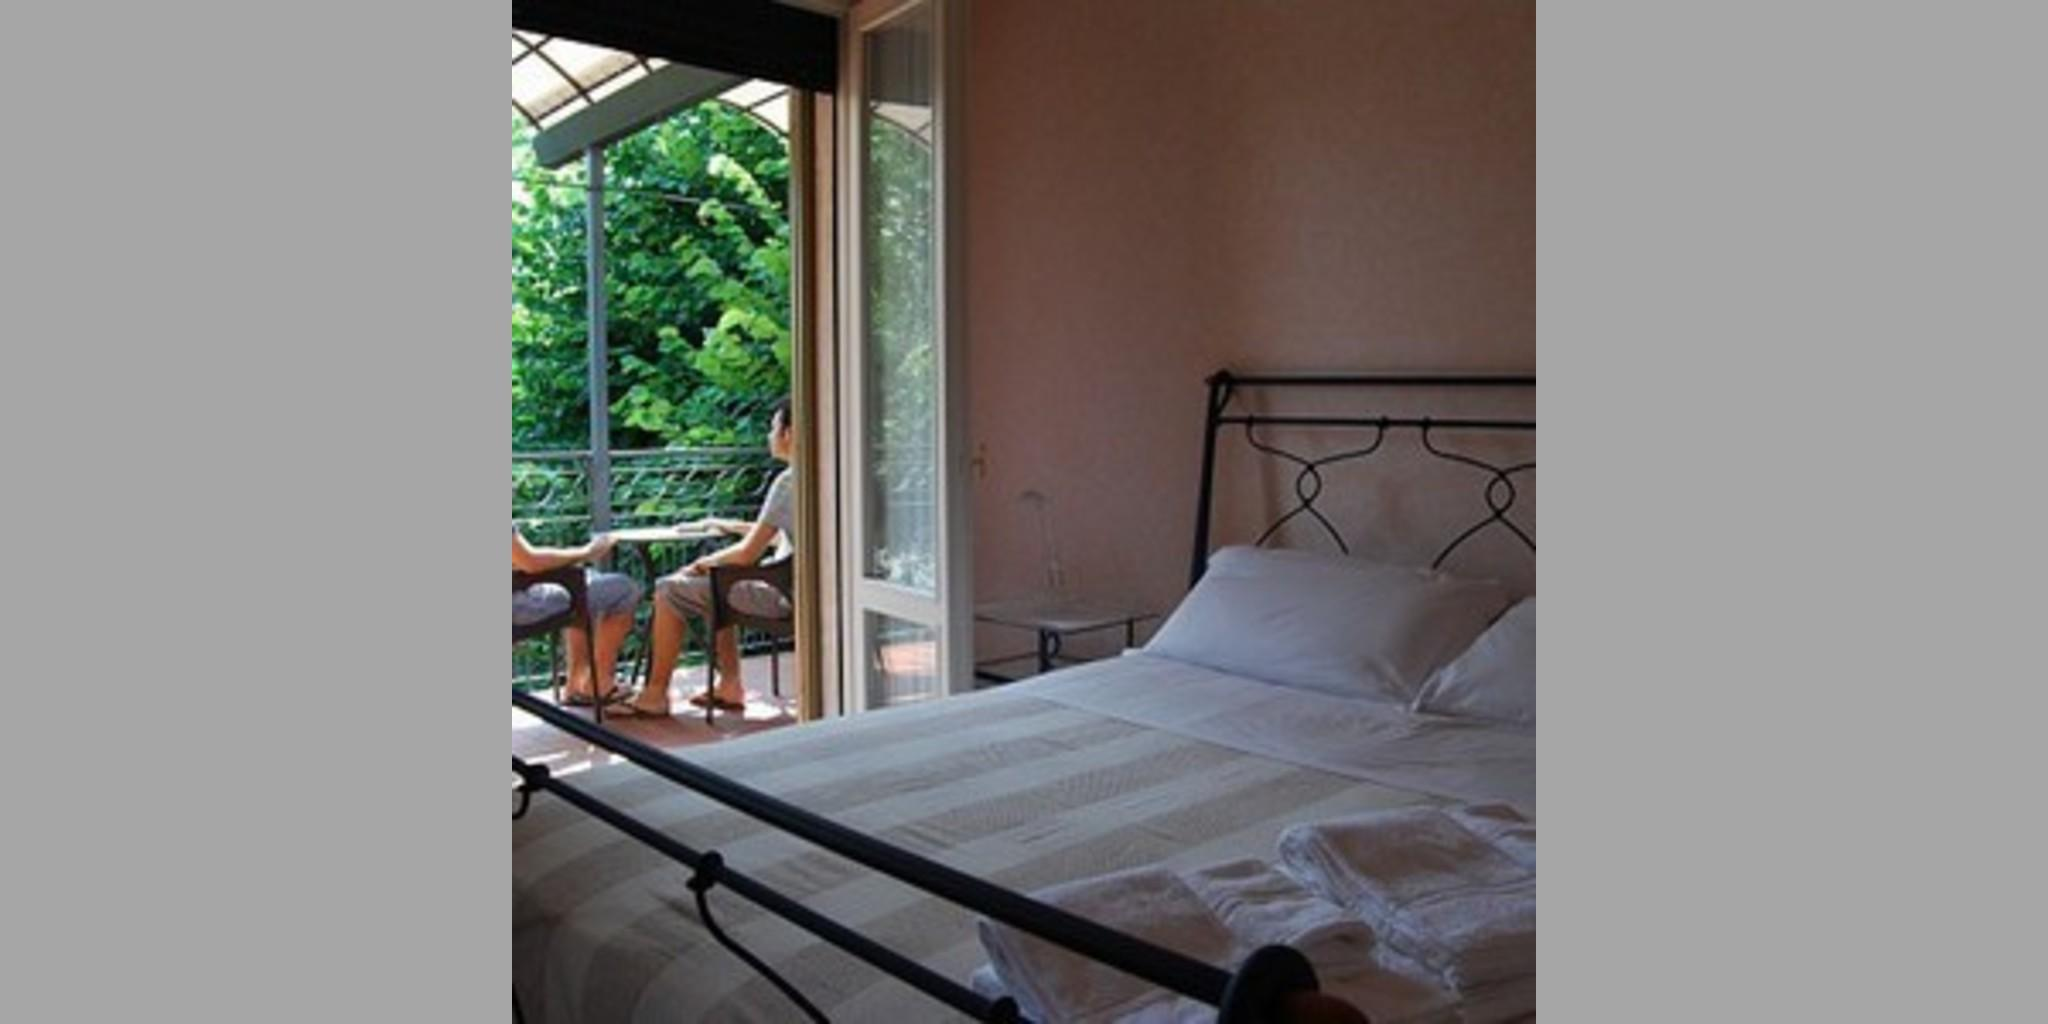 Bed & Breakfast Curtatone - Giovanni Verga